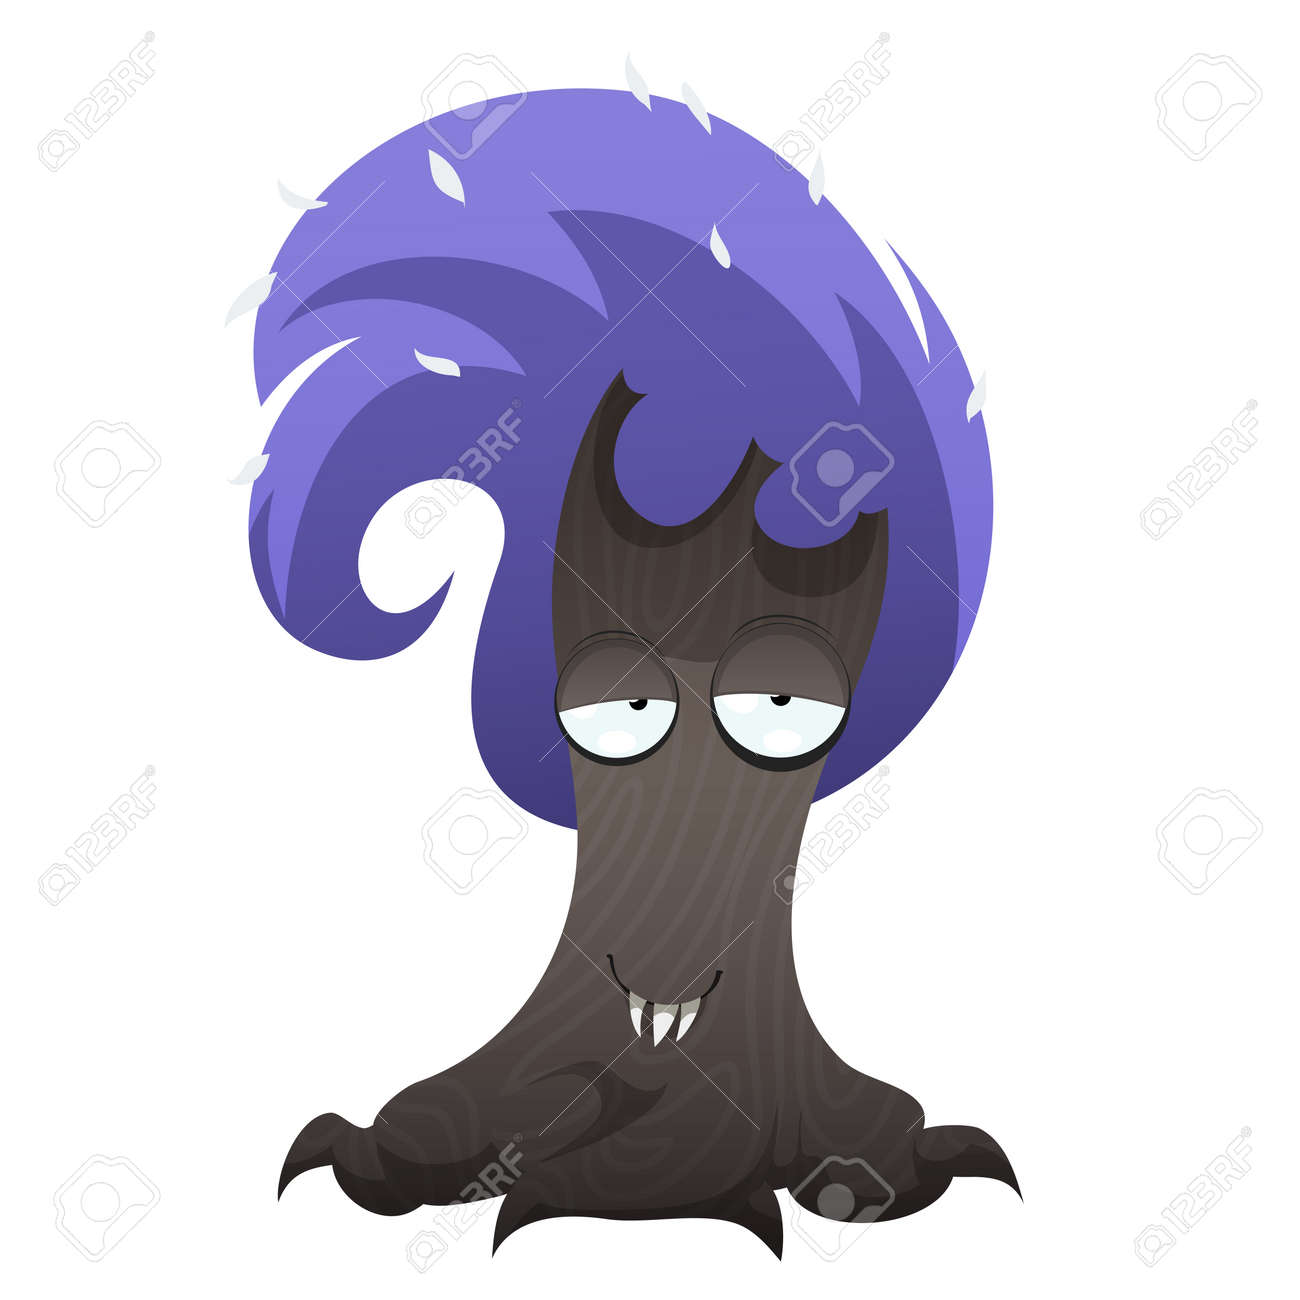 funny tree monster for halloween spooky tree isolated on white rh 123rf com Halloween Clip Art Spooky Tree Sketch